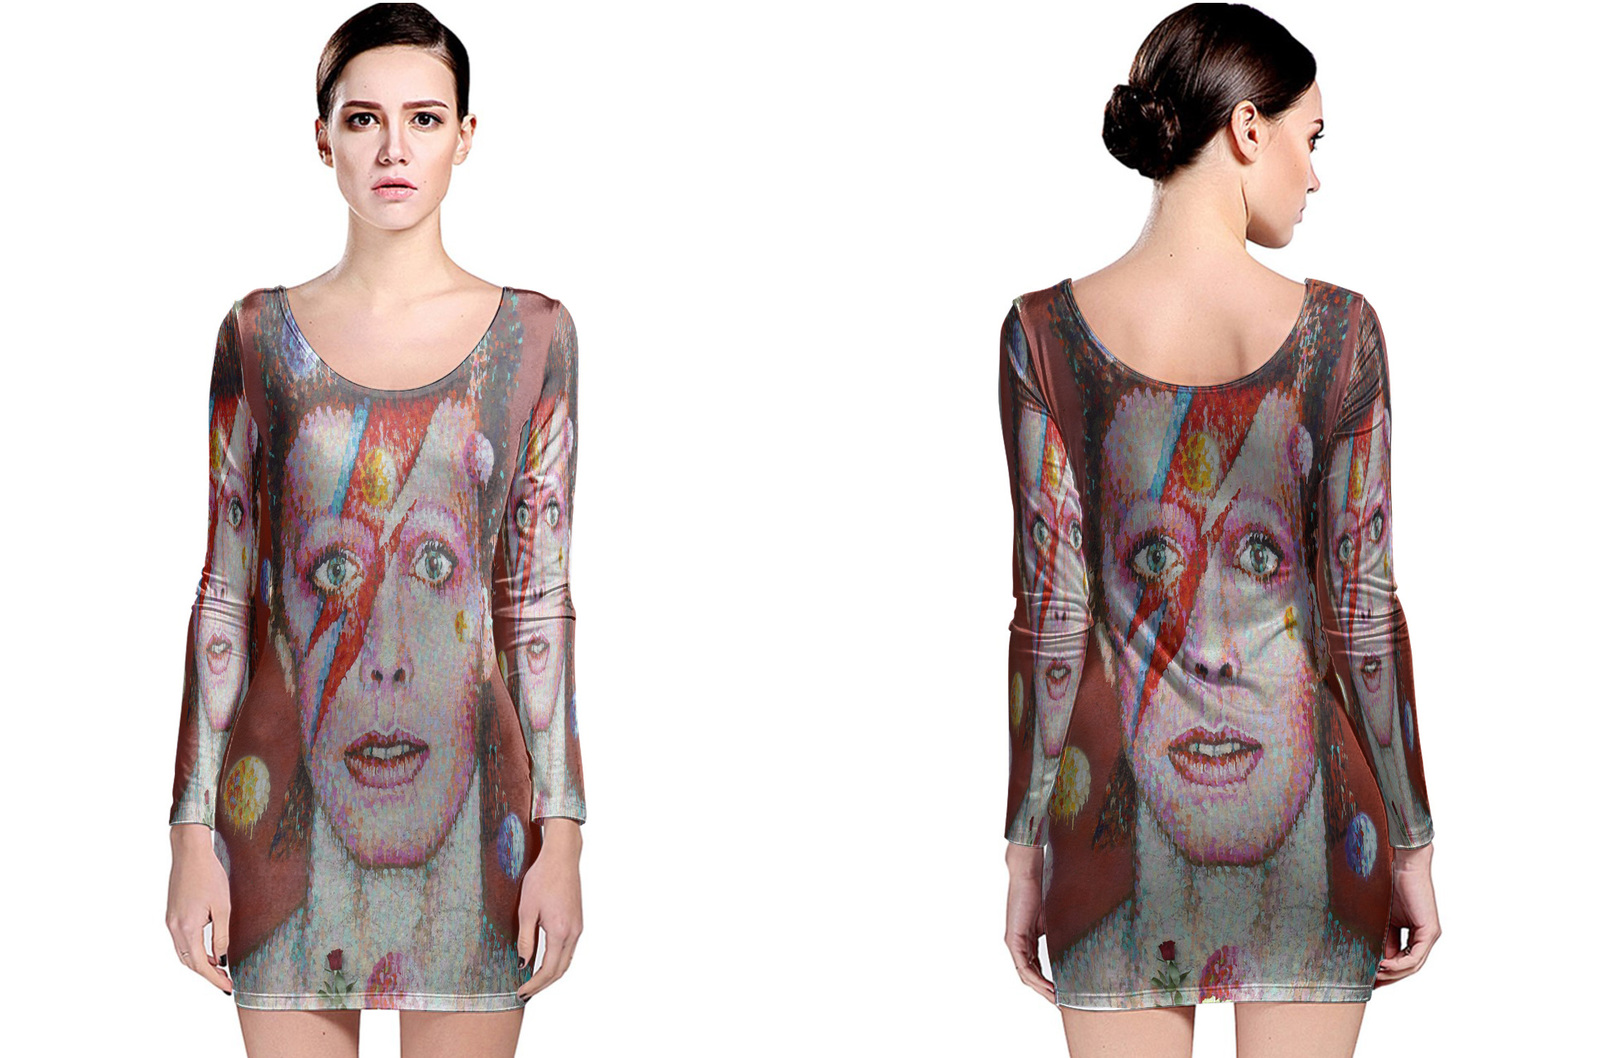 Primary image for David Bowie Memorial Long Slevee Bodycon Dress